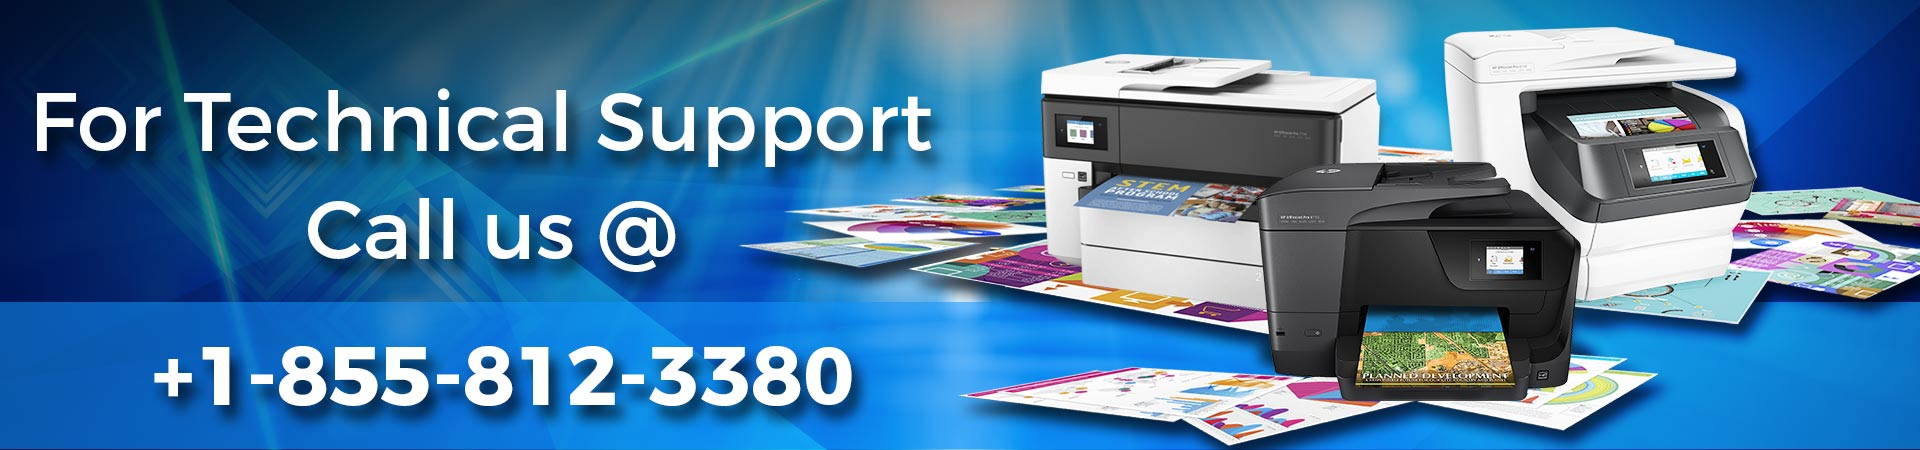 Technical Support for HP Officejet Pro Printer